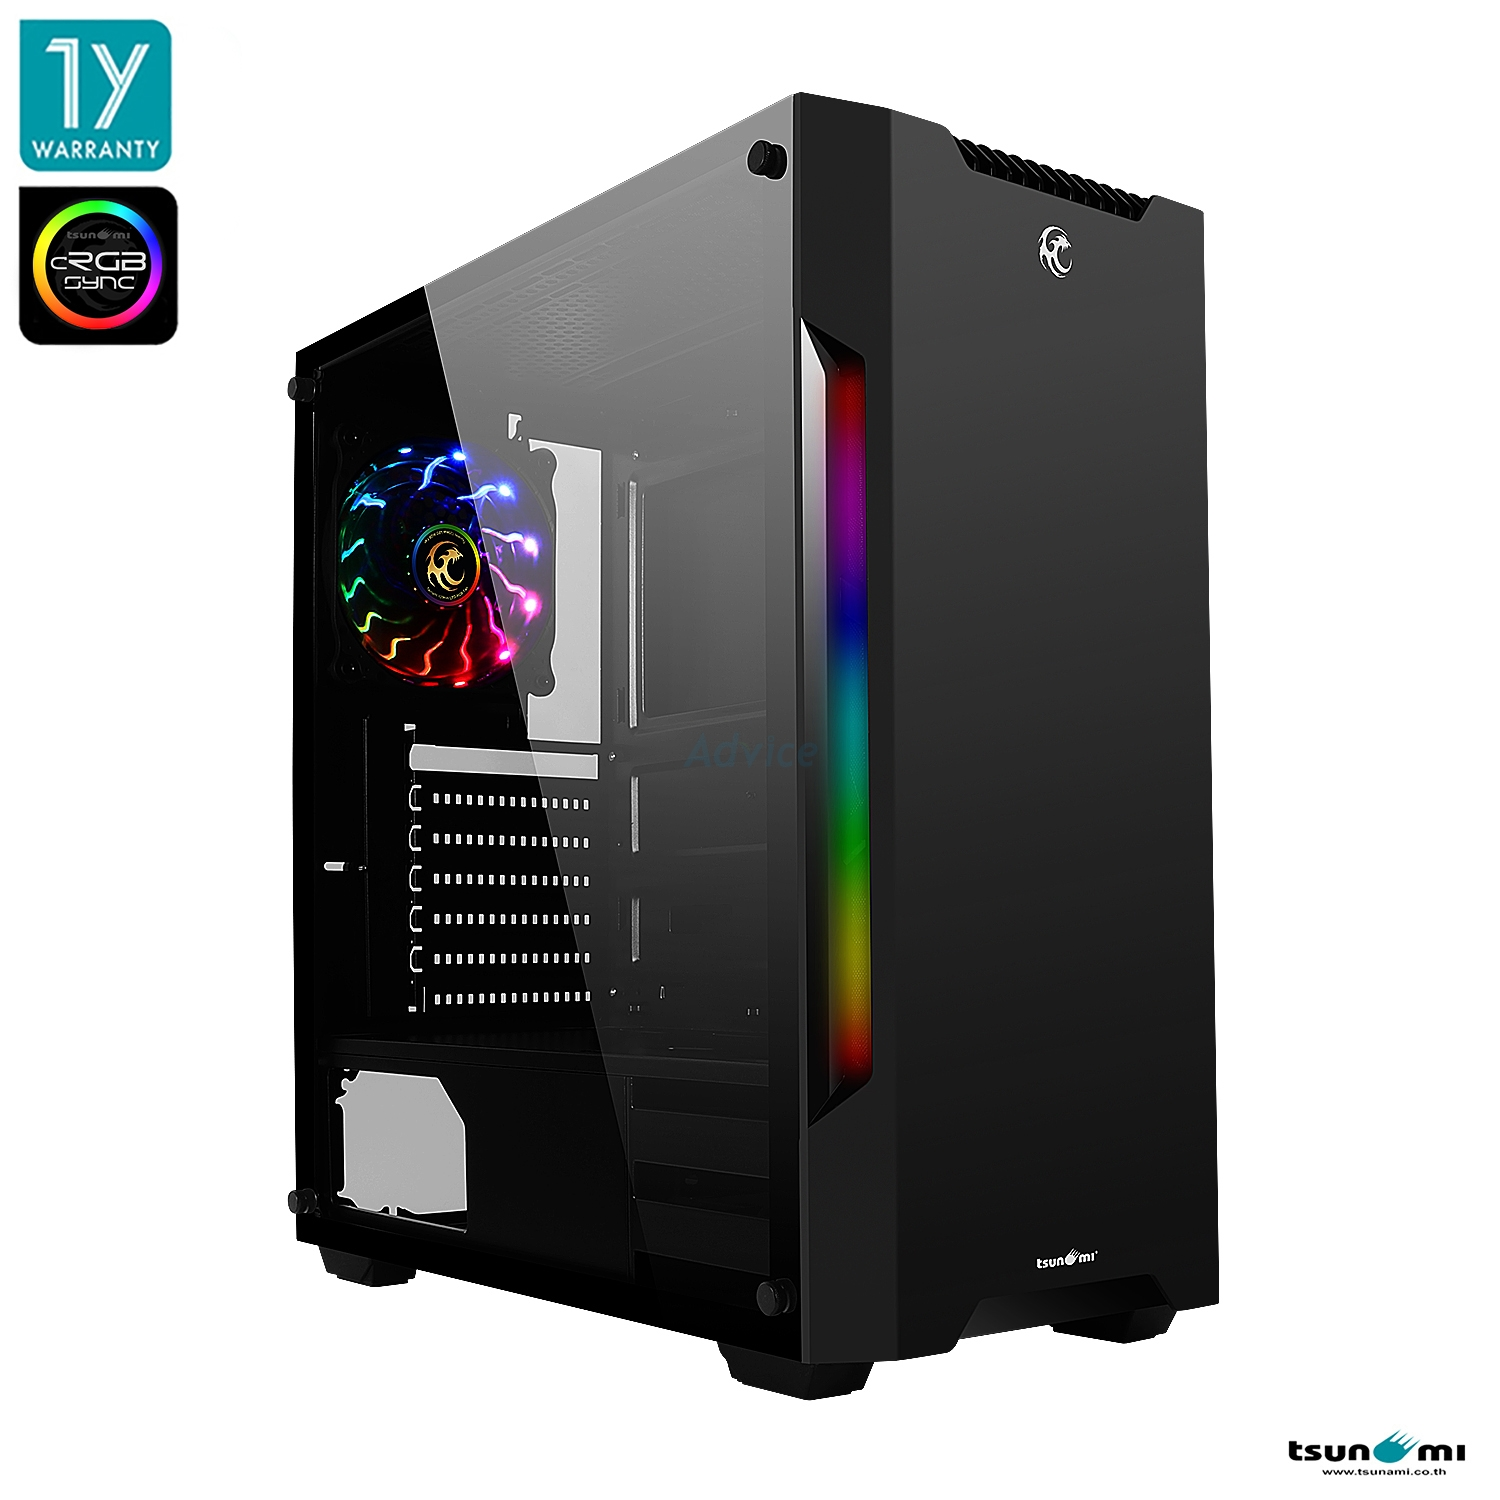 ATX Case (NP) TSUNAMI Pro Hero K10 Phantom (Black)